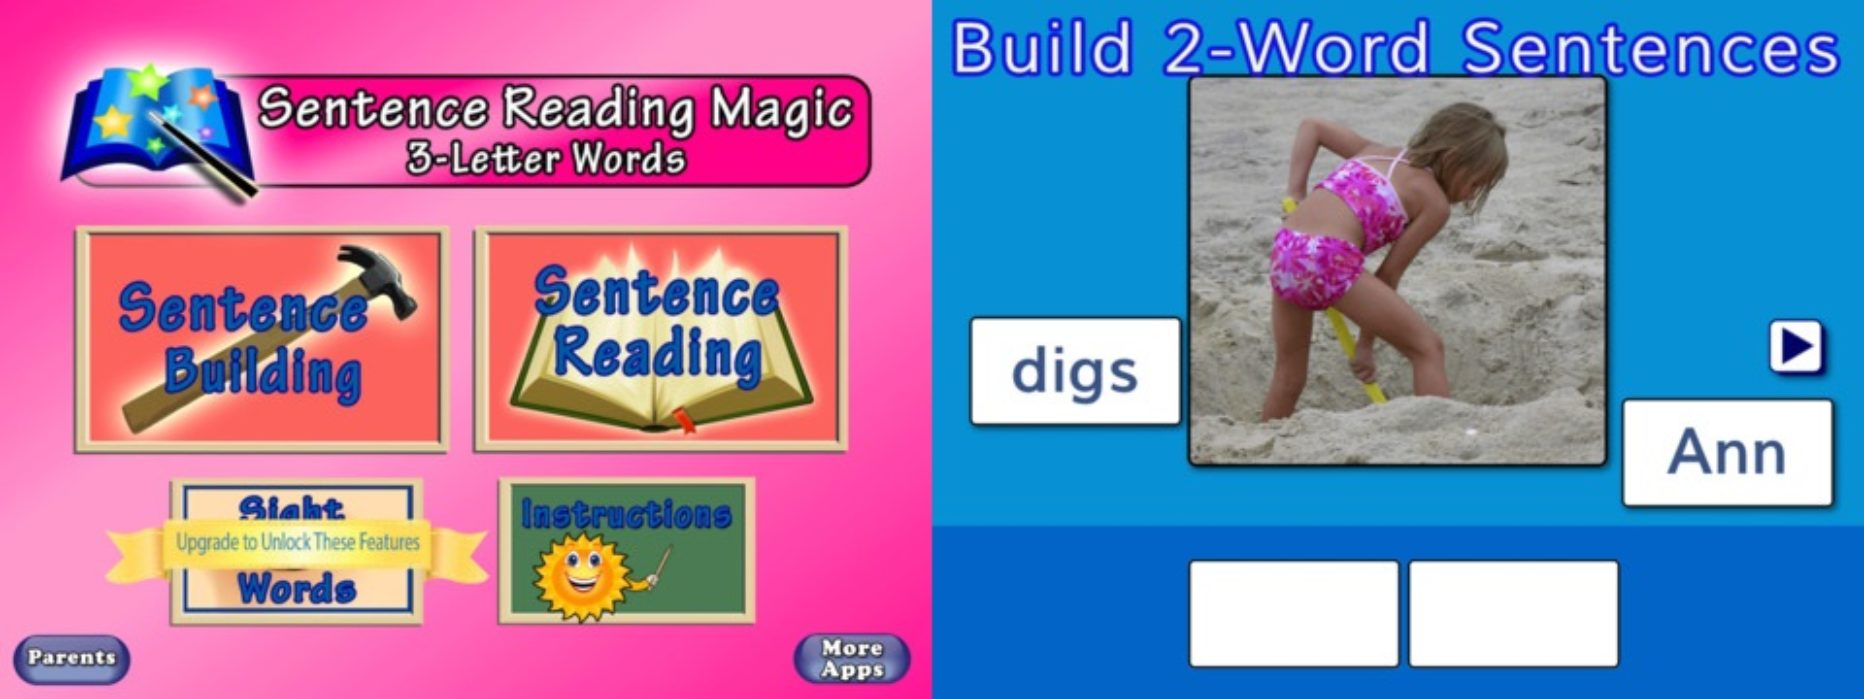 SENTENCE READING MAGIC App Helps Kids Learn to Read the Easy Way